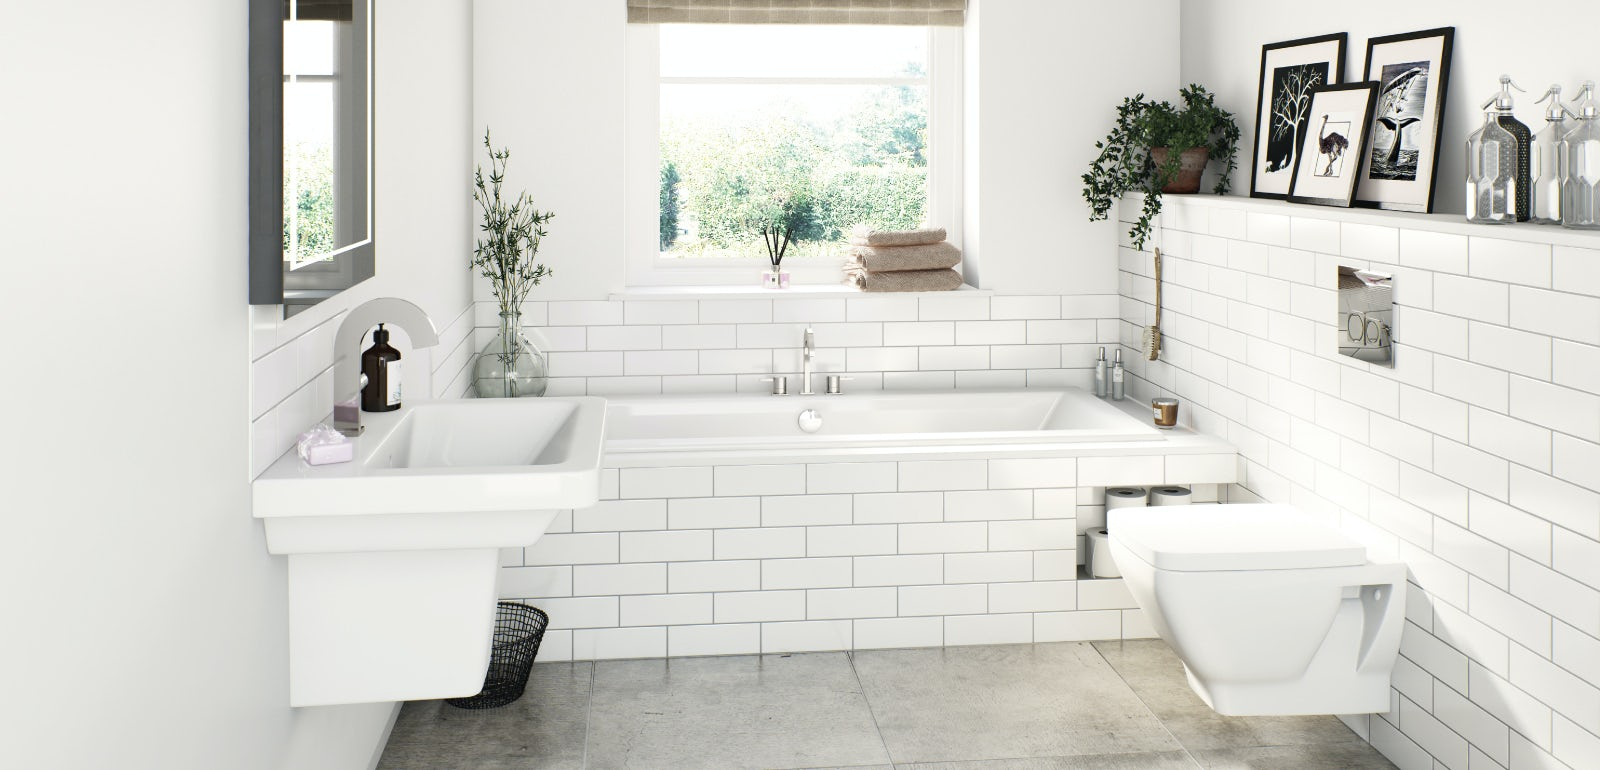 Bathrooms New in Home Decorating Ideas